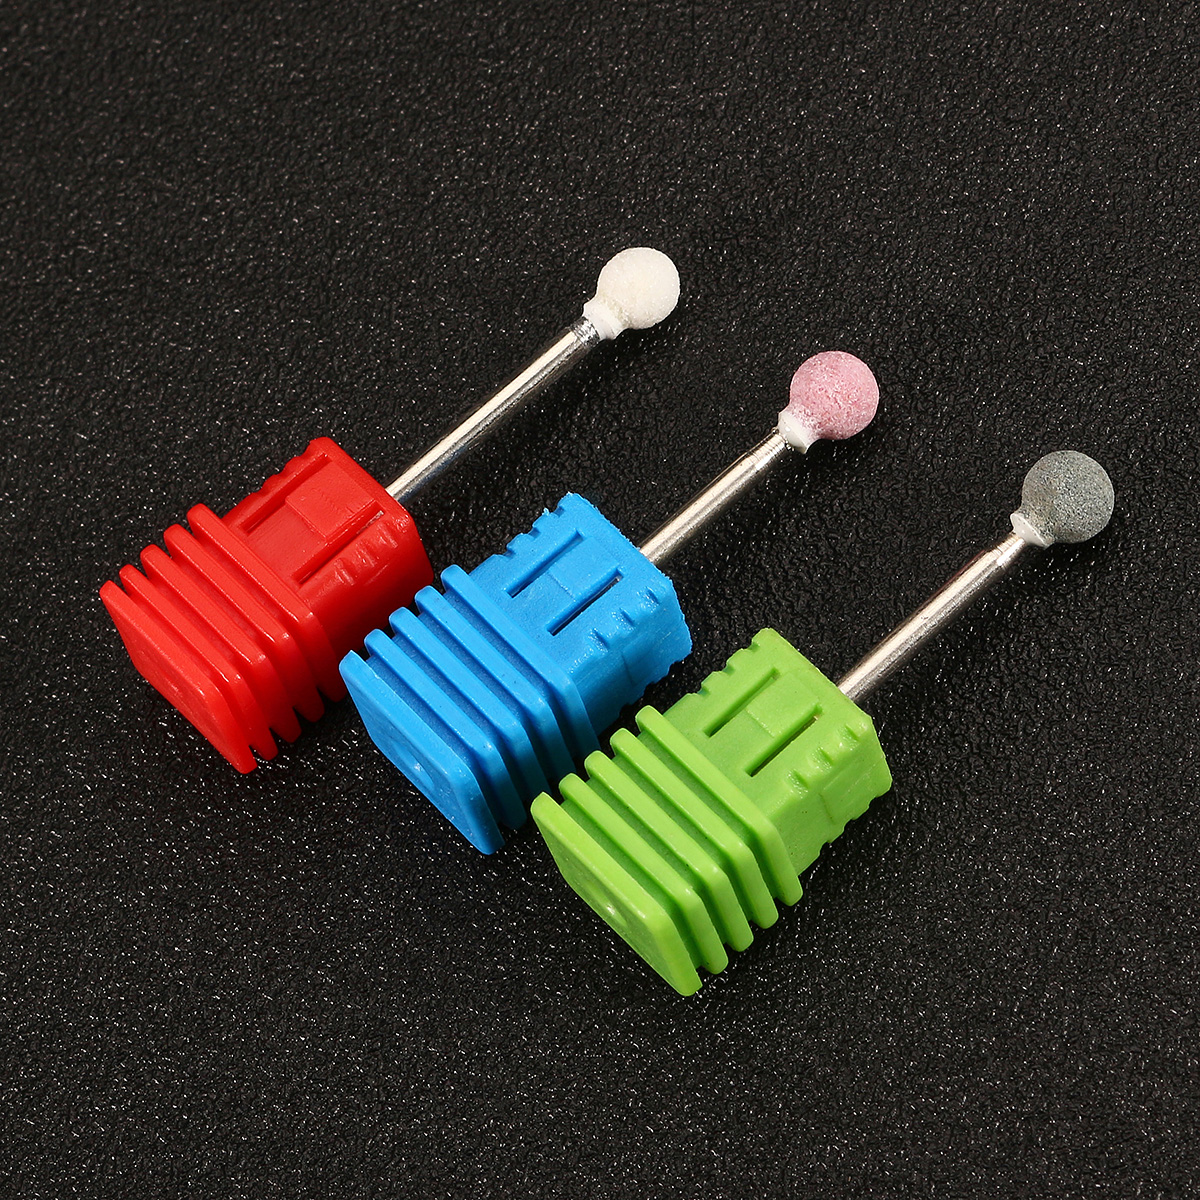 3/32 Inch Electric Nail Drill Bits Replacement Polishing Heads Ceramic Acrylic Manicure Tool